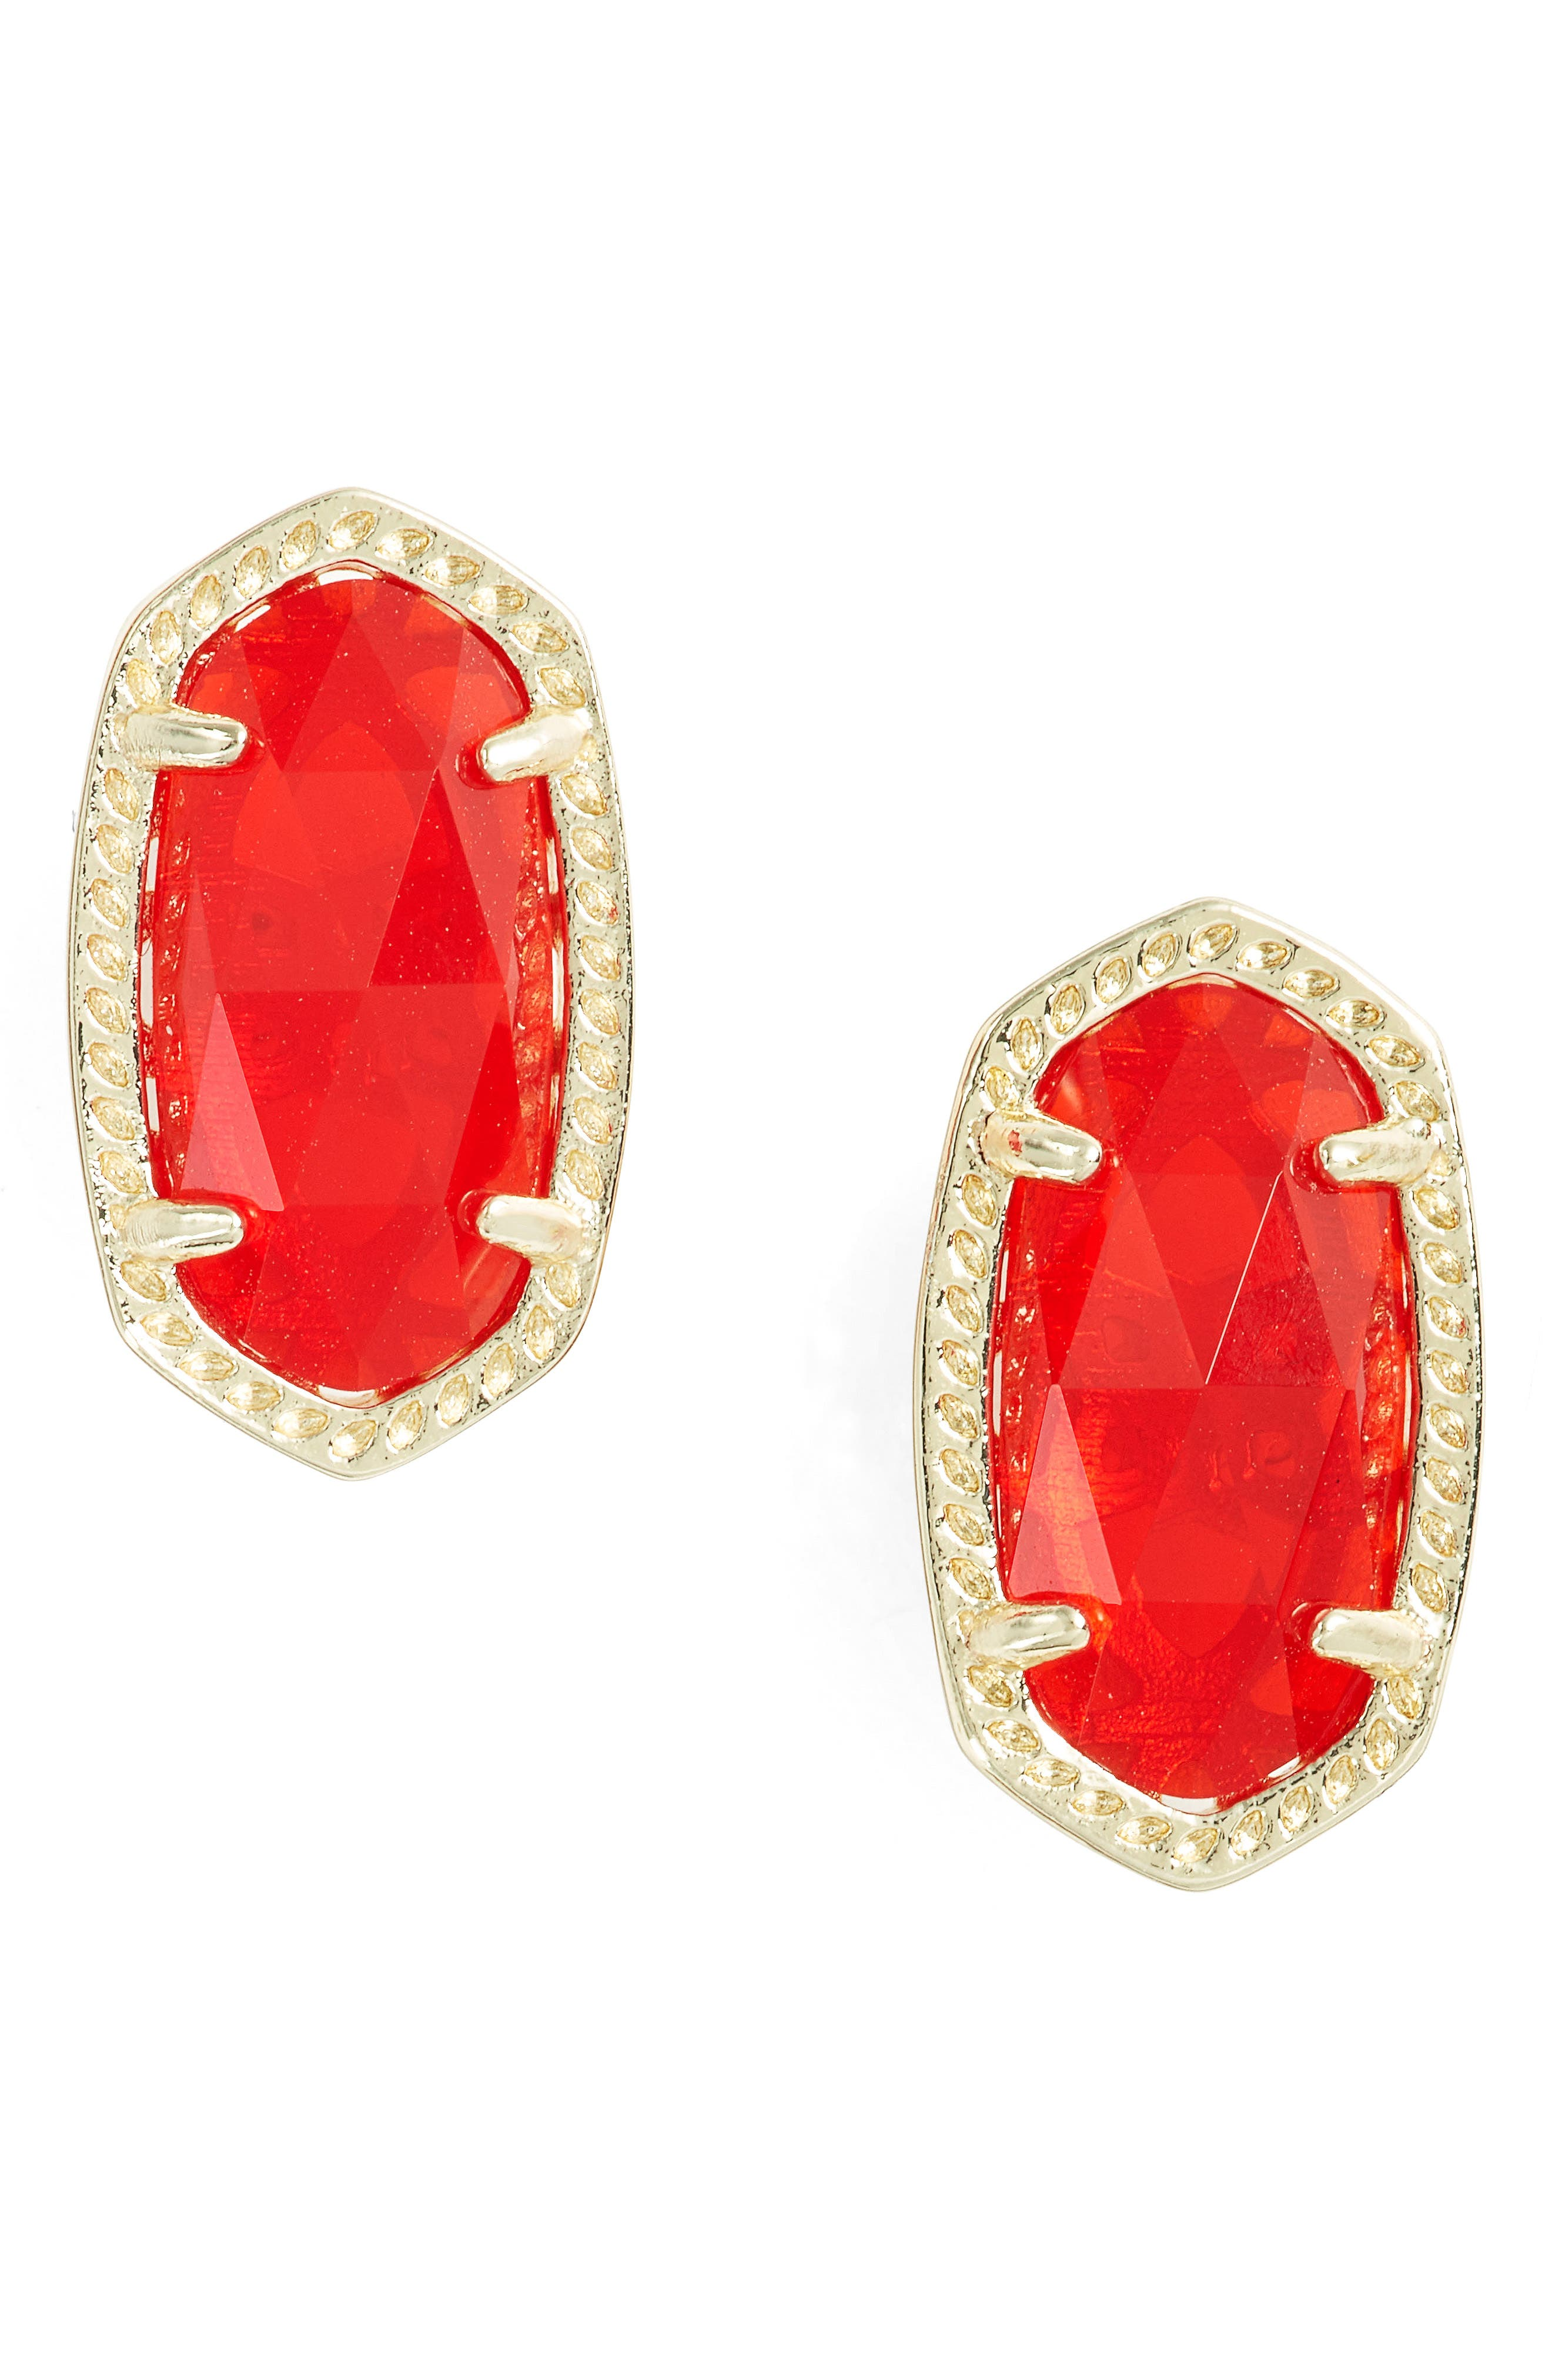 Main Image - Kendra Scott Ellie Birthstone Stud Earrings